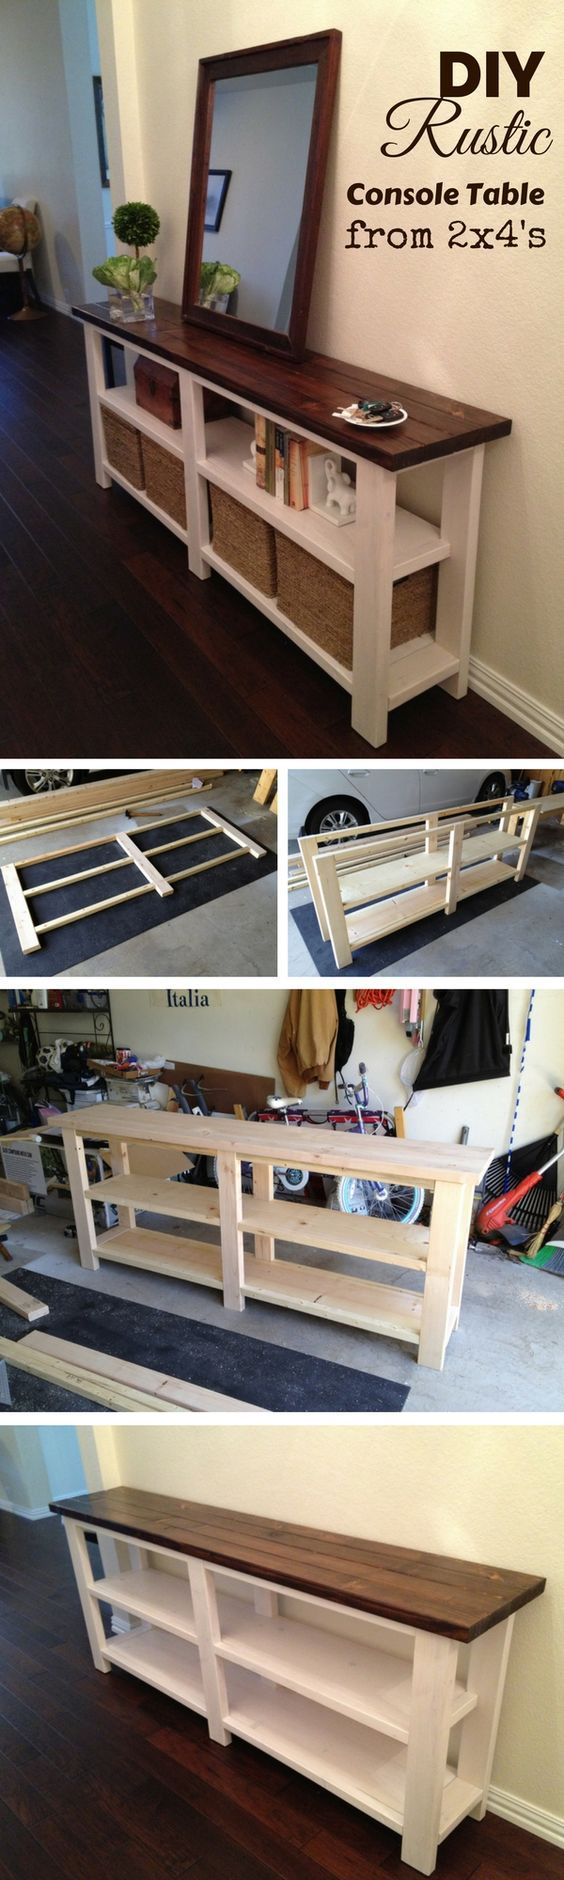 Crafty x DIY Projects That You Can Easily Make Rustic console